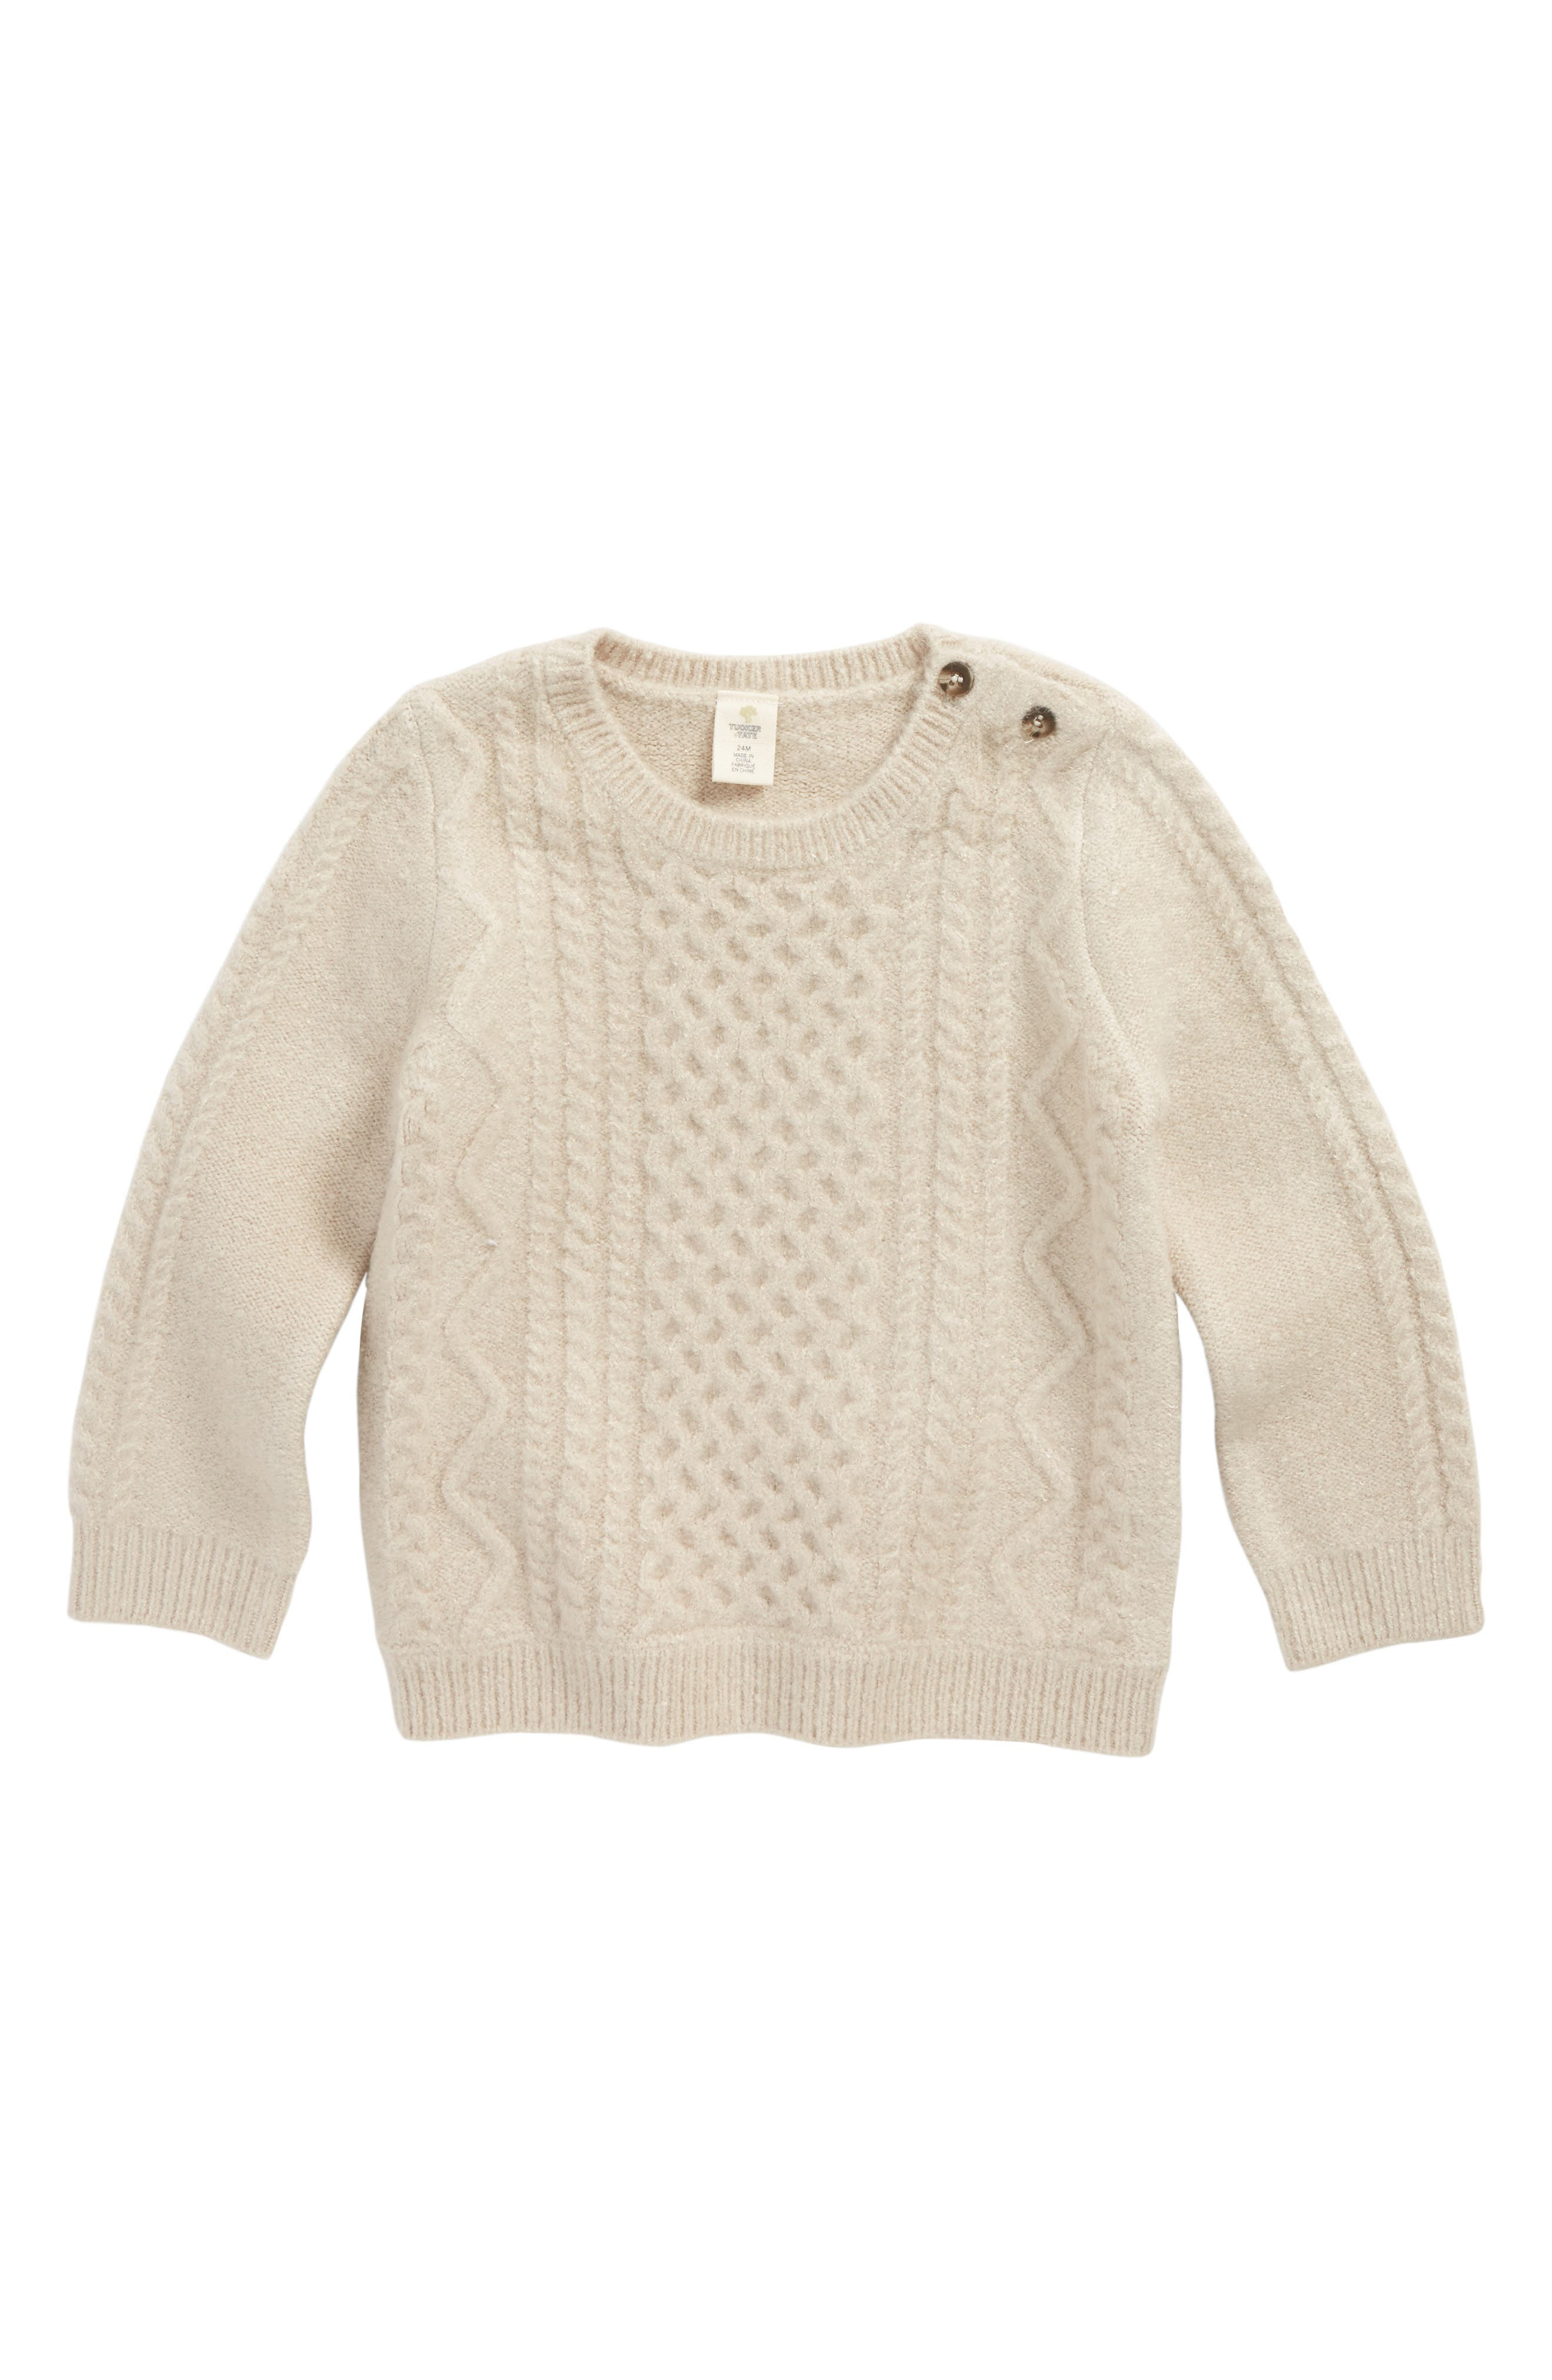 Main Image - Tucker + Tate Cable Sweater (Baby)